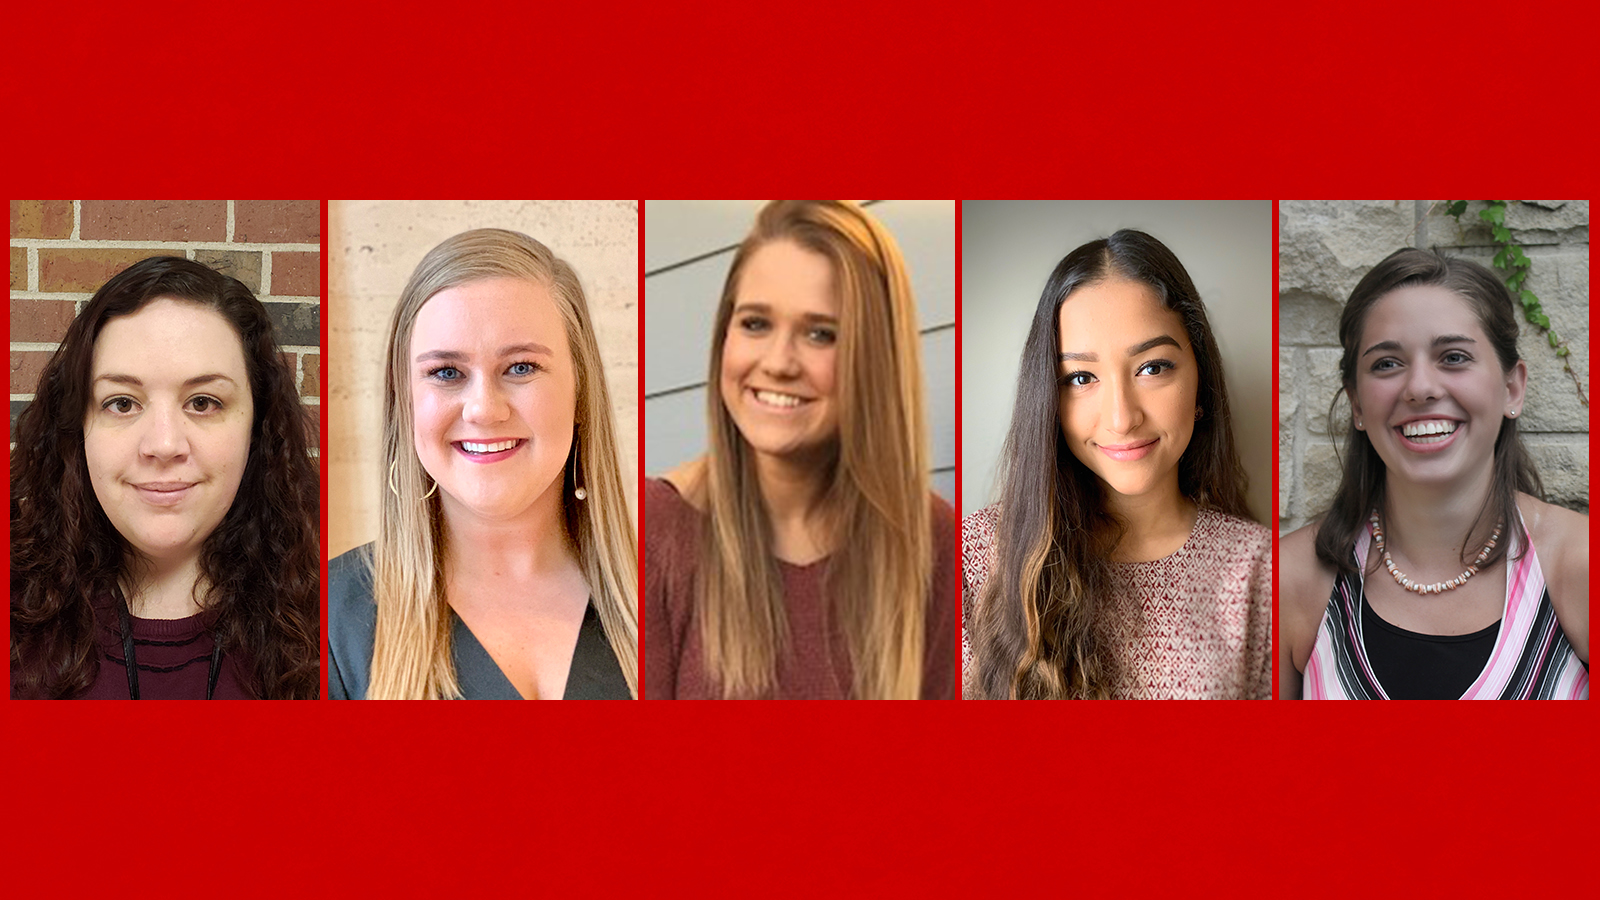 Ann Hilton, Anna Hershberger, Morgan Hilker, Ely Naveja and Alaina Rast are among the students graduating with degrees in special education Dec. 20-21 from the University of Nebraska-Lincoln.